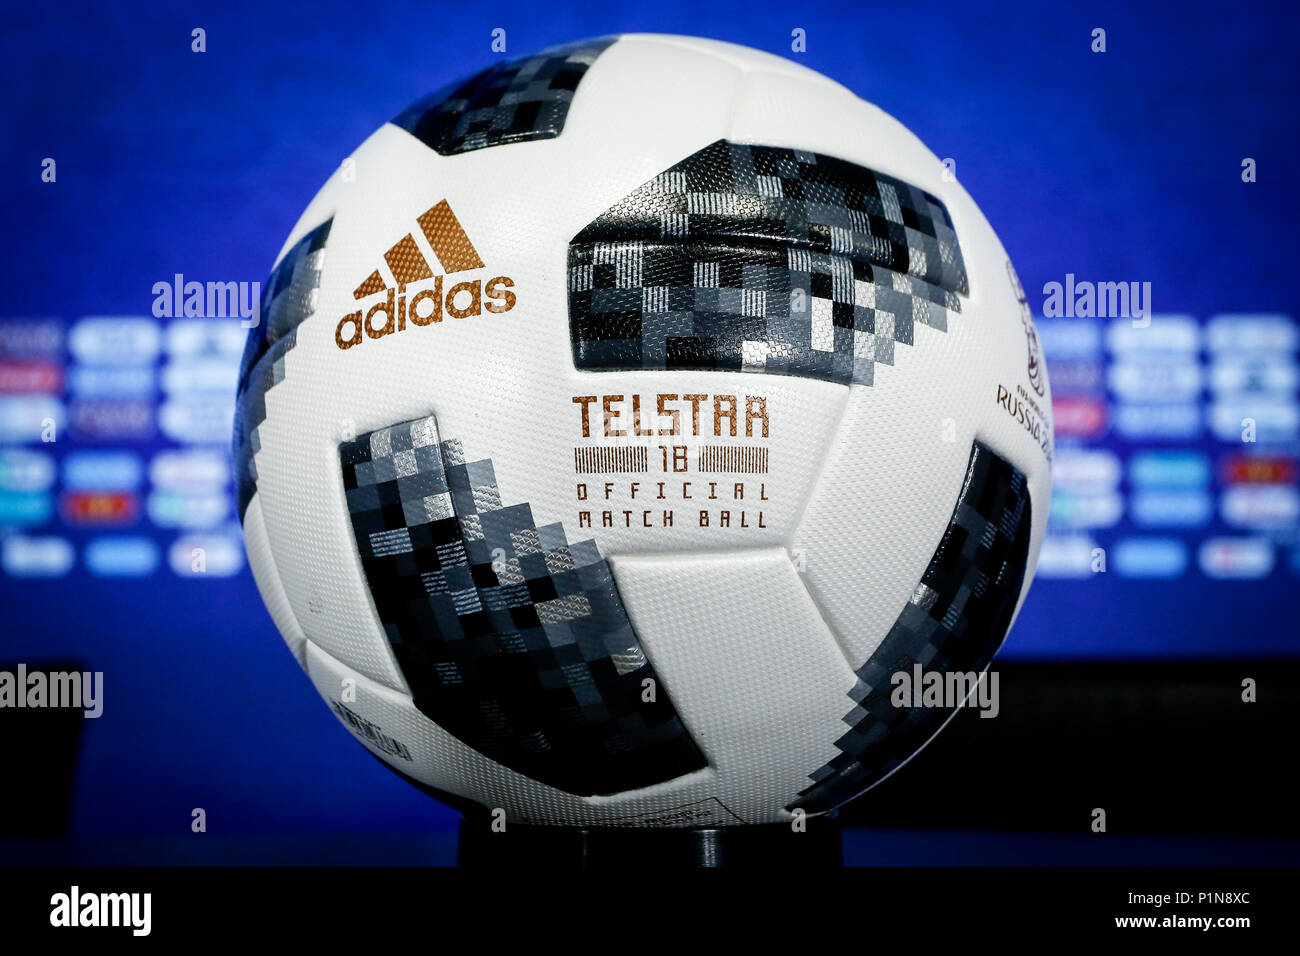 Adidas In Moscow Immagini   Adidas In Moscow Fotos Stock - Alamy e0297a7b5f90b